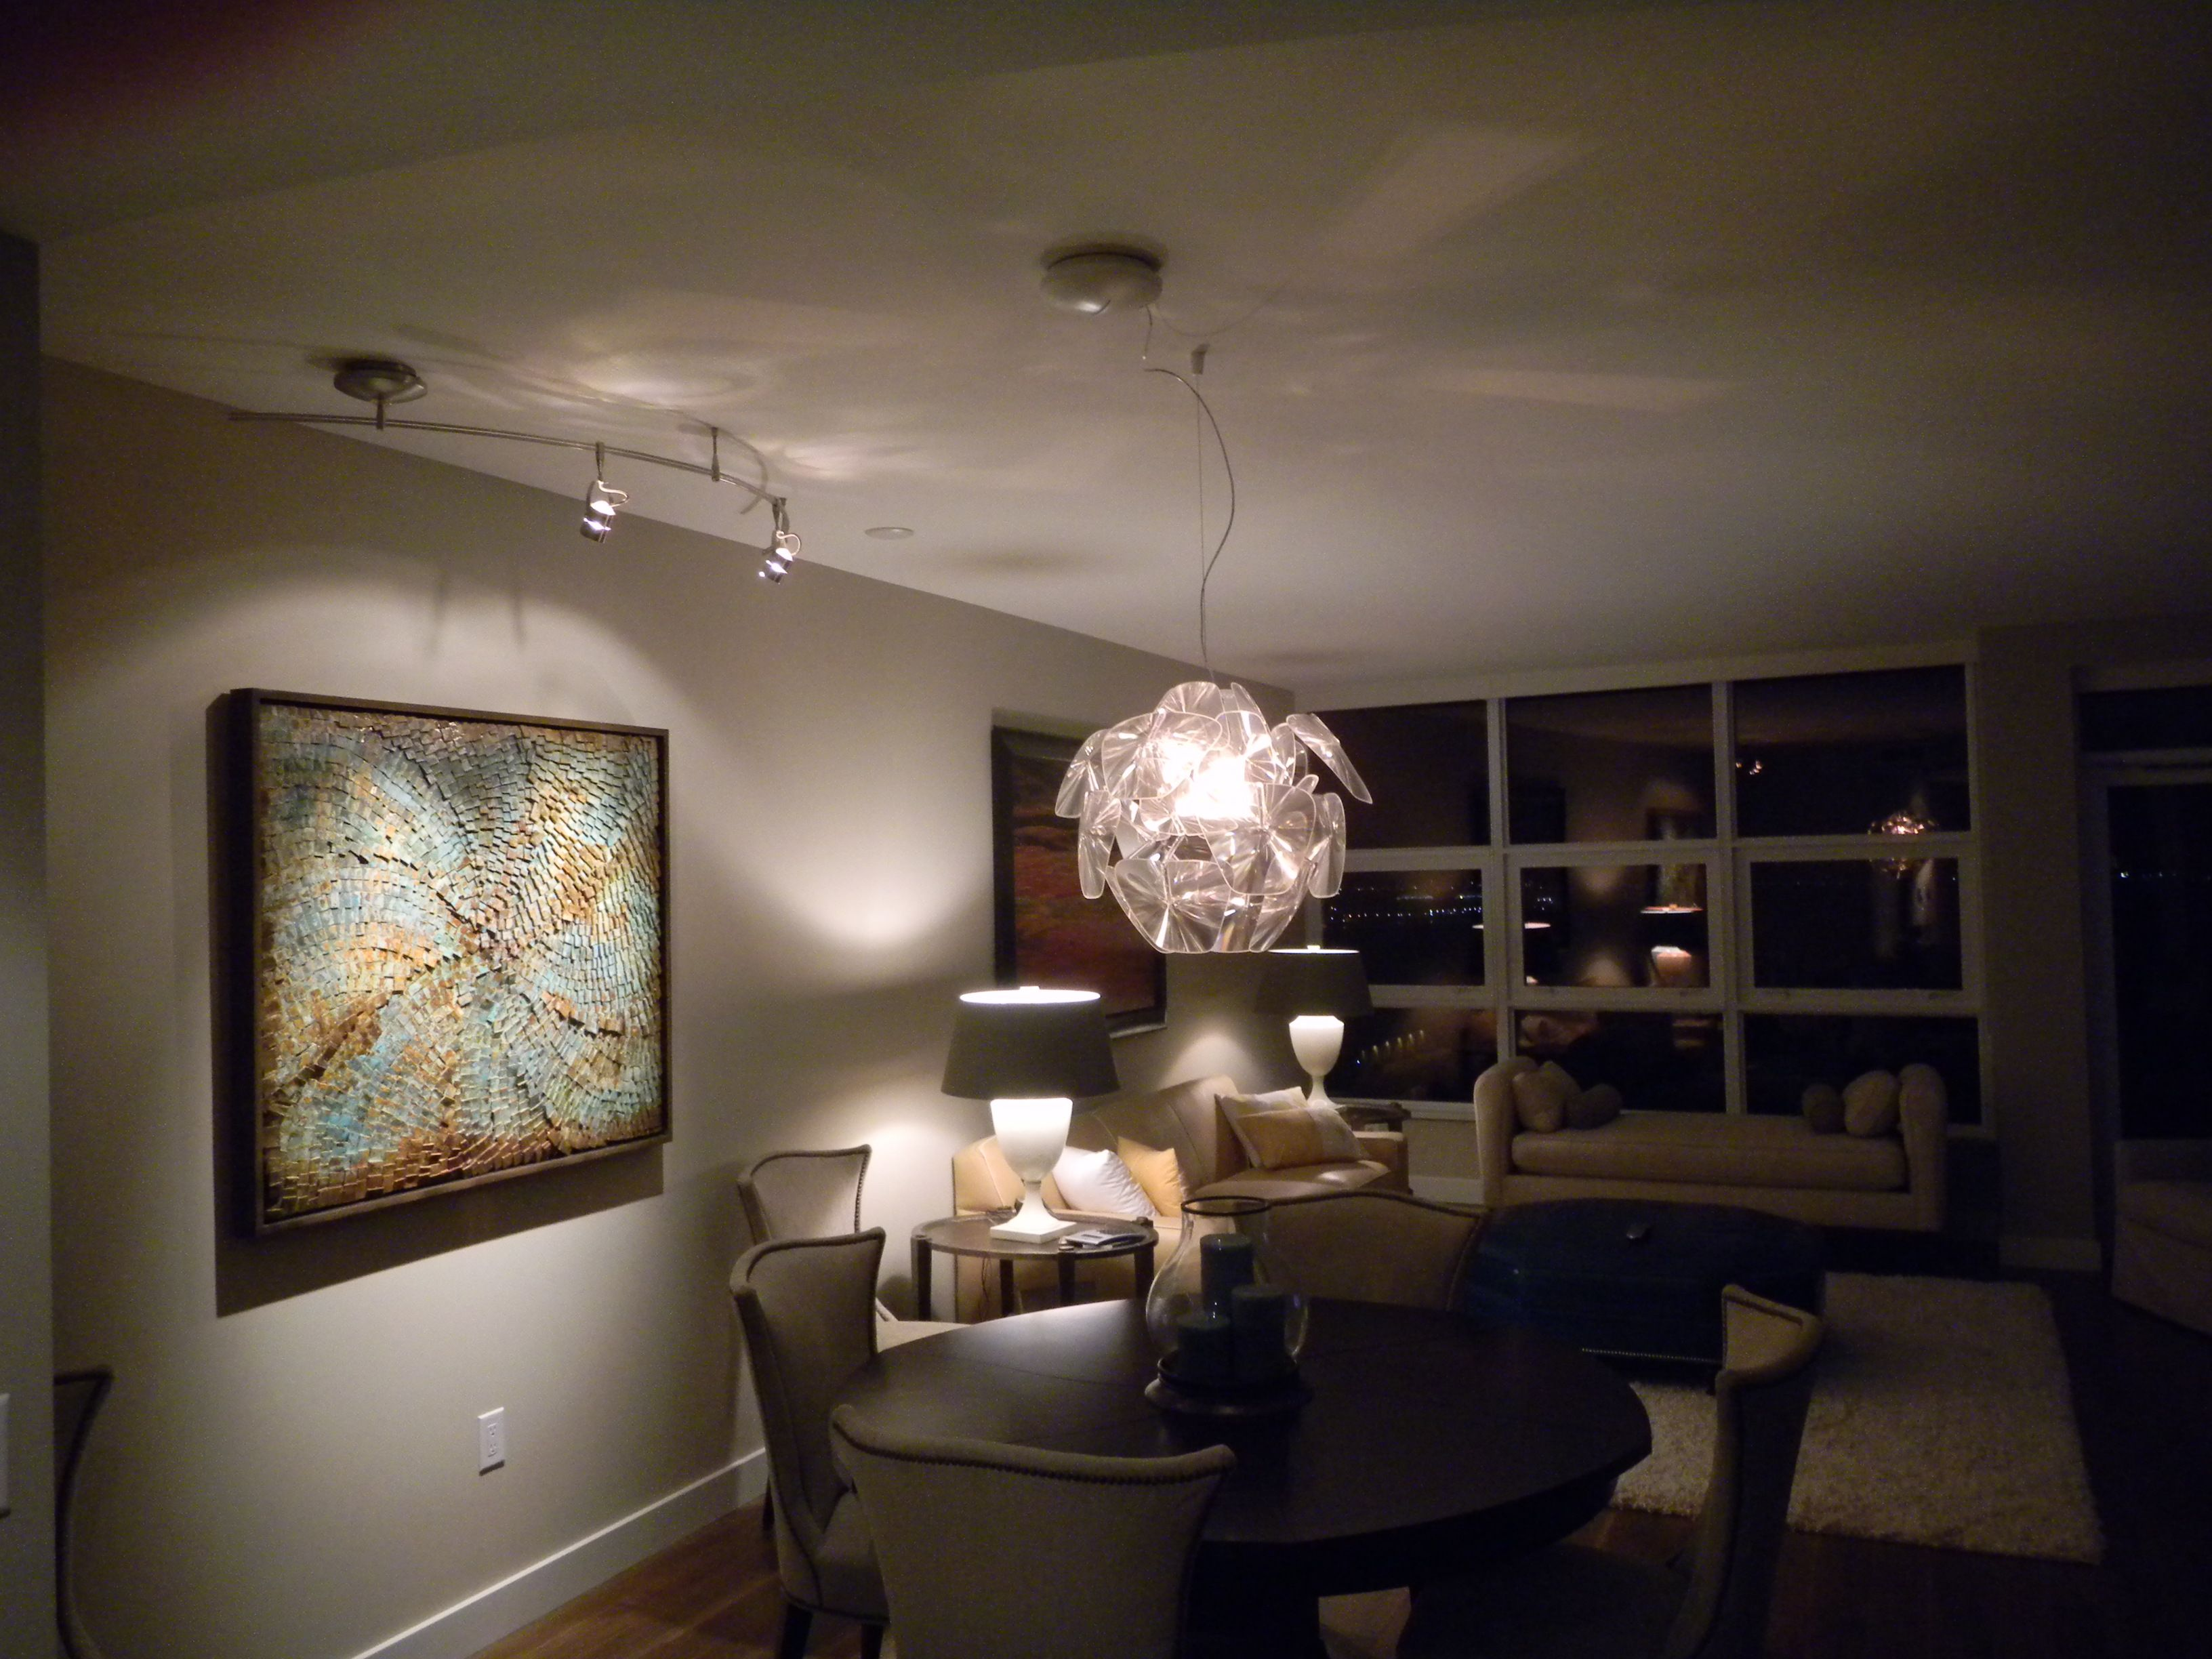 Private Residence San Diego Ca Hope Suspension Luce Plan And Tech Lighting Monorail Urban Lighting Inc Urban Lighting Tech Lighting Monorail Lighting Inc